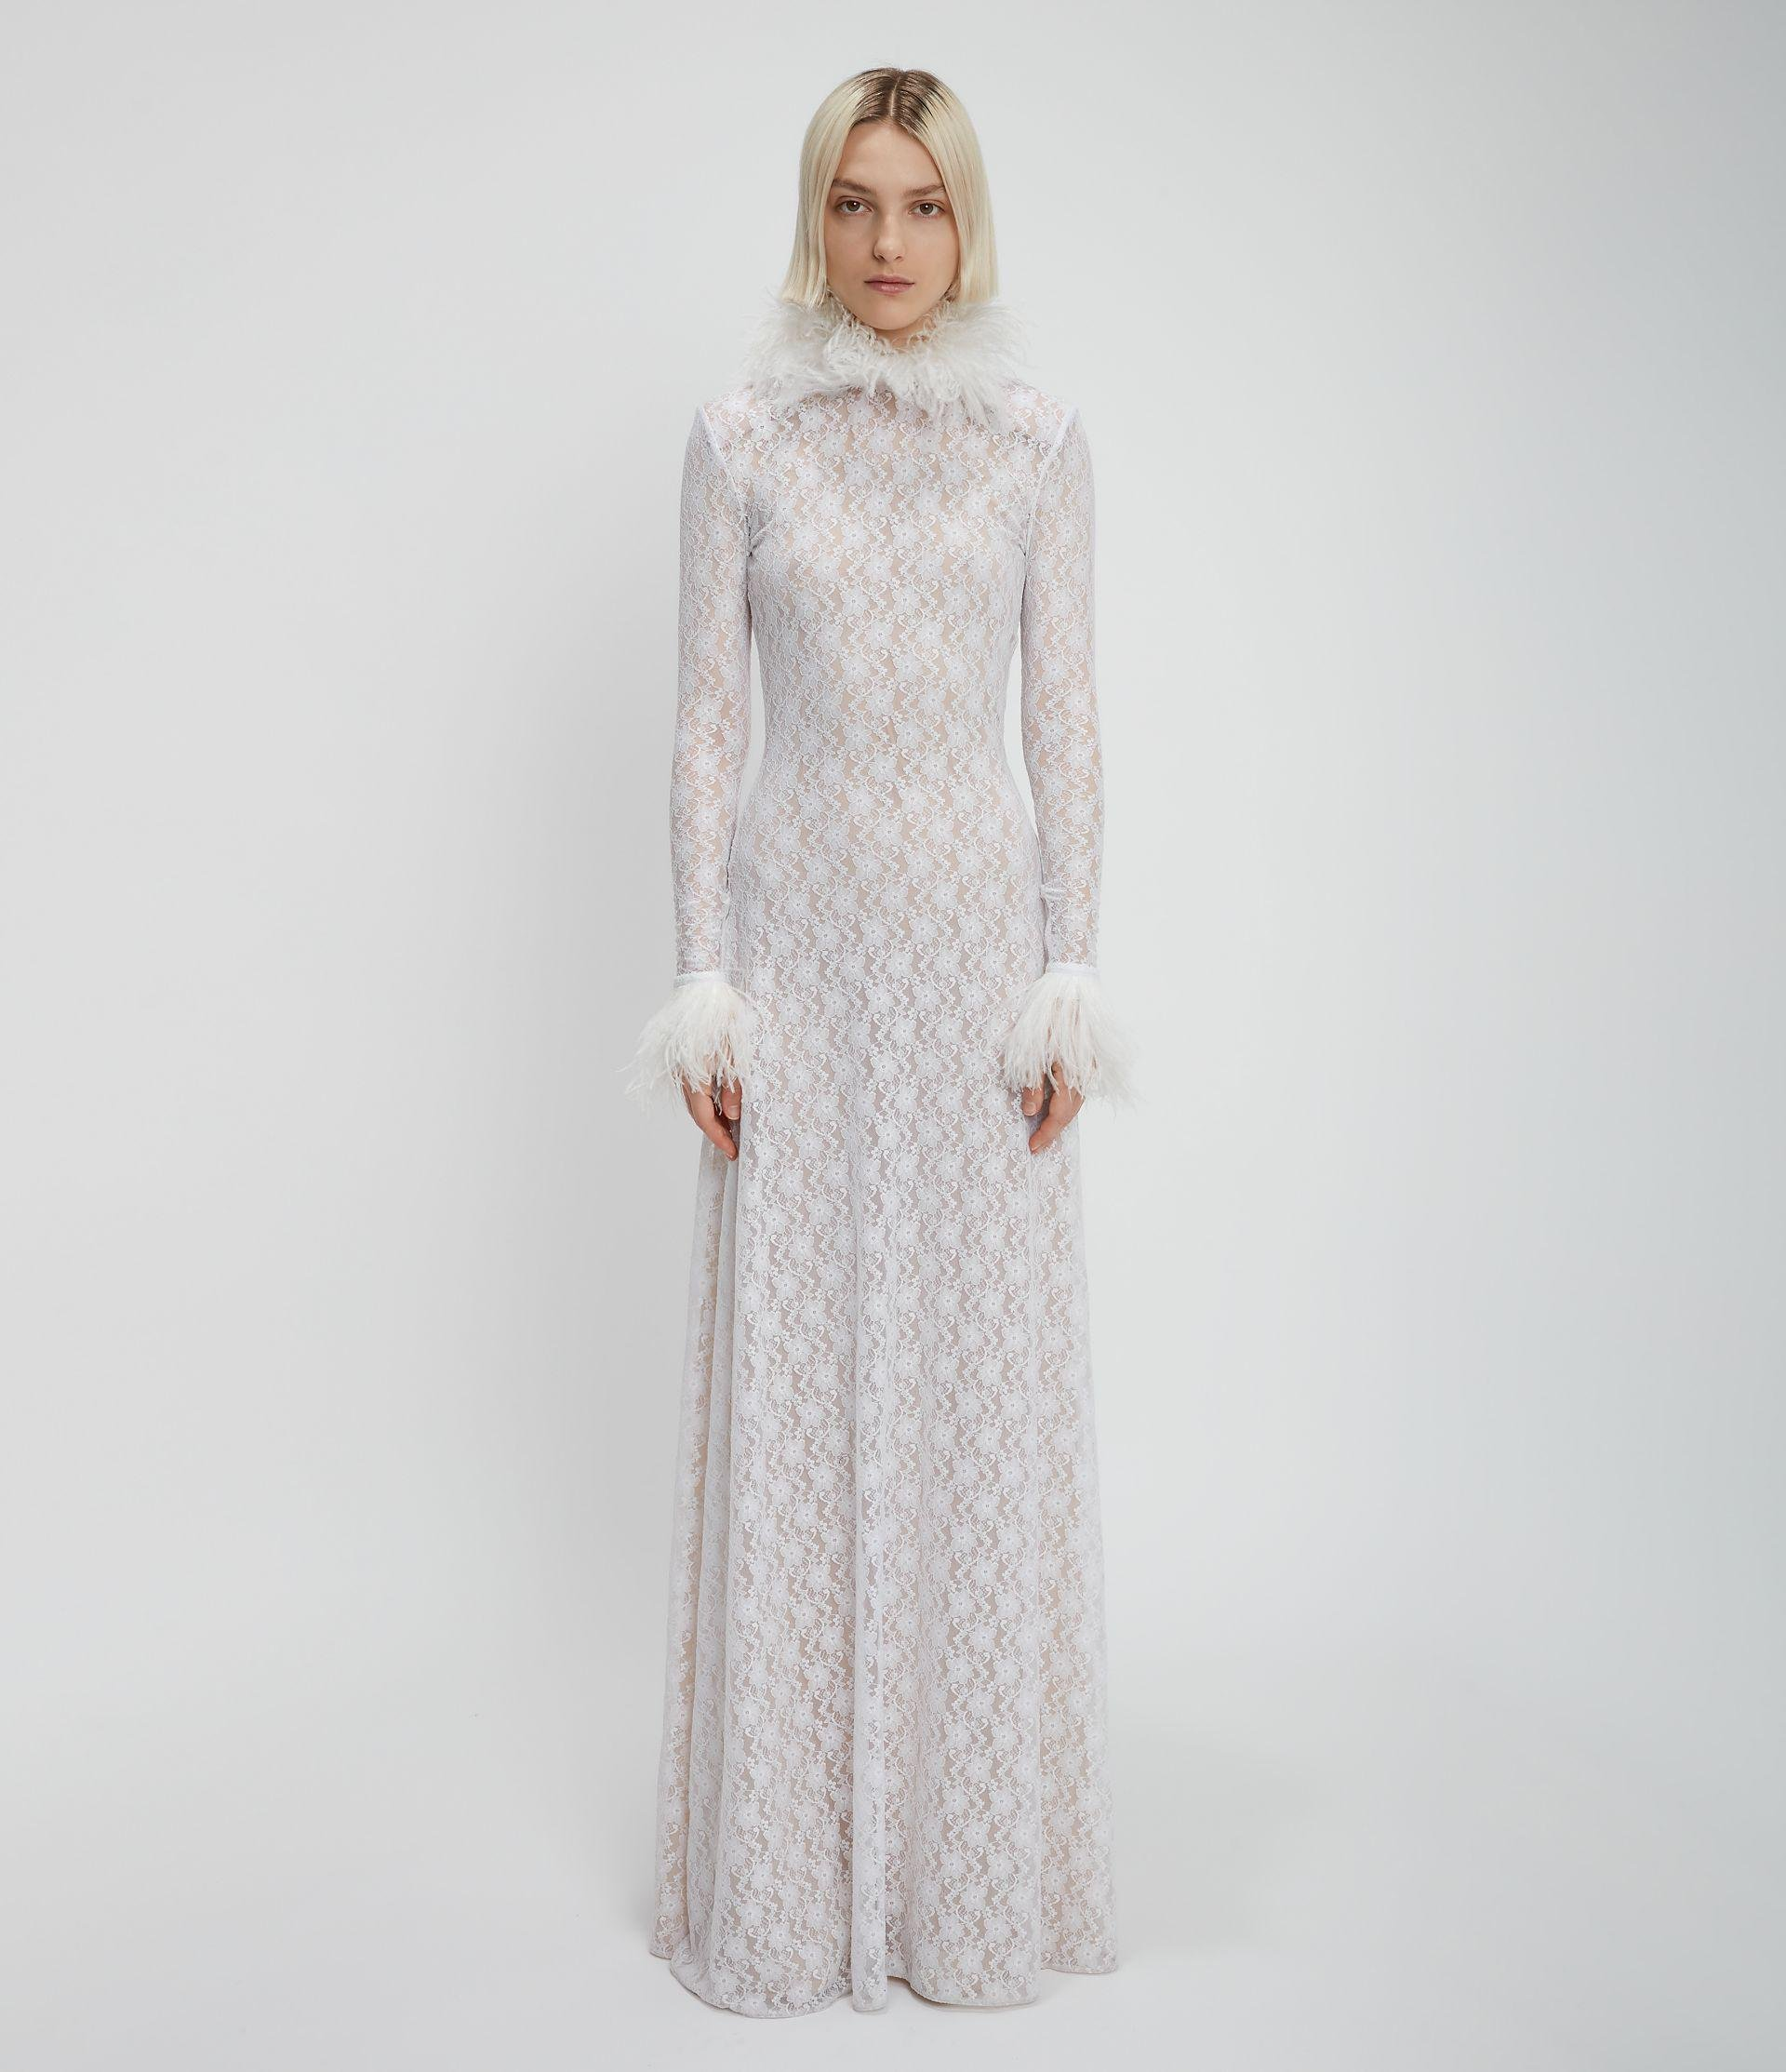 Christopher Kane Bridal: Lace Gown